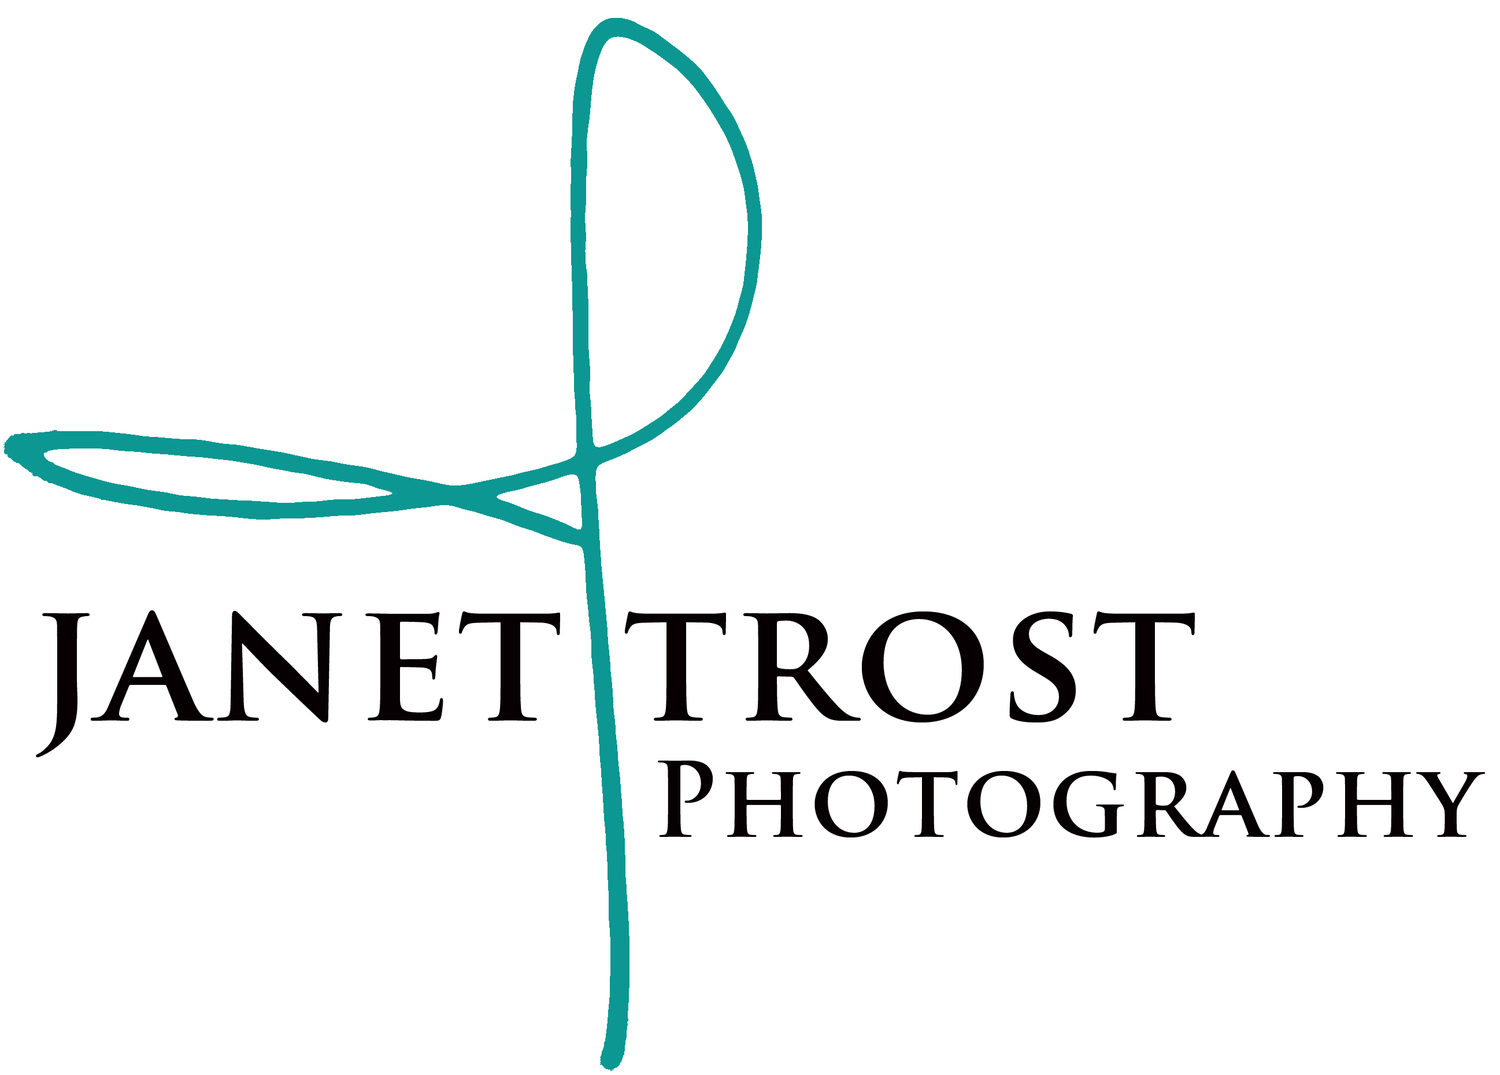 Janet Trost Photography